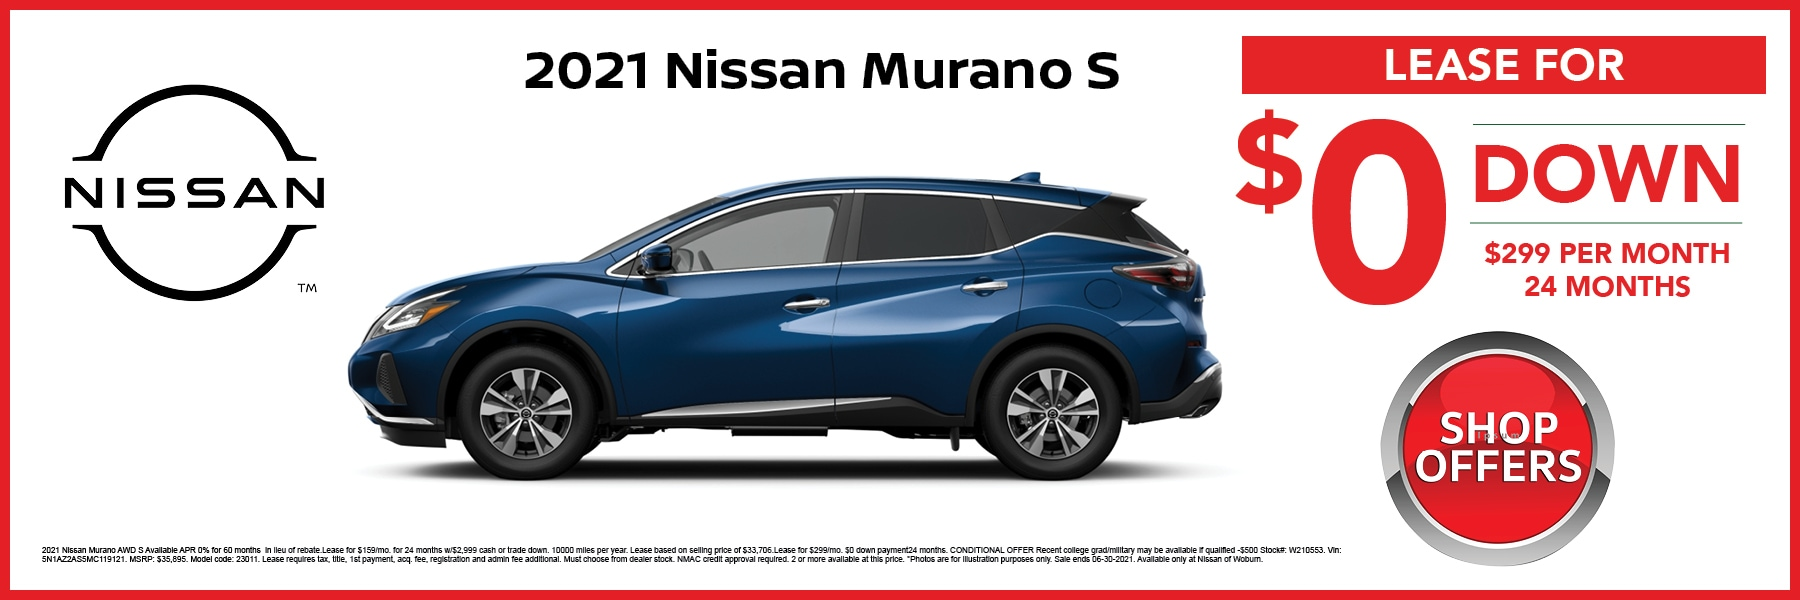 Murano S Special Offer